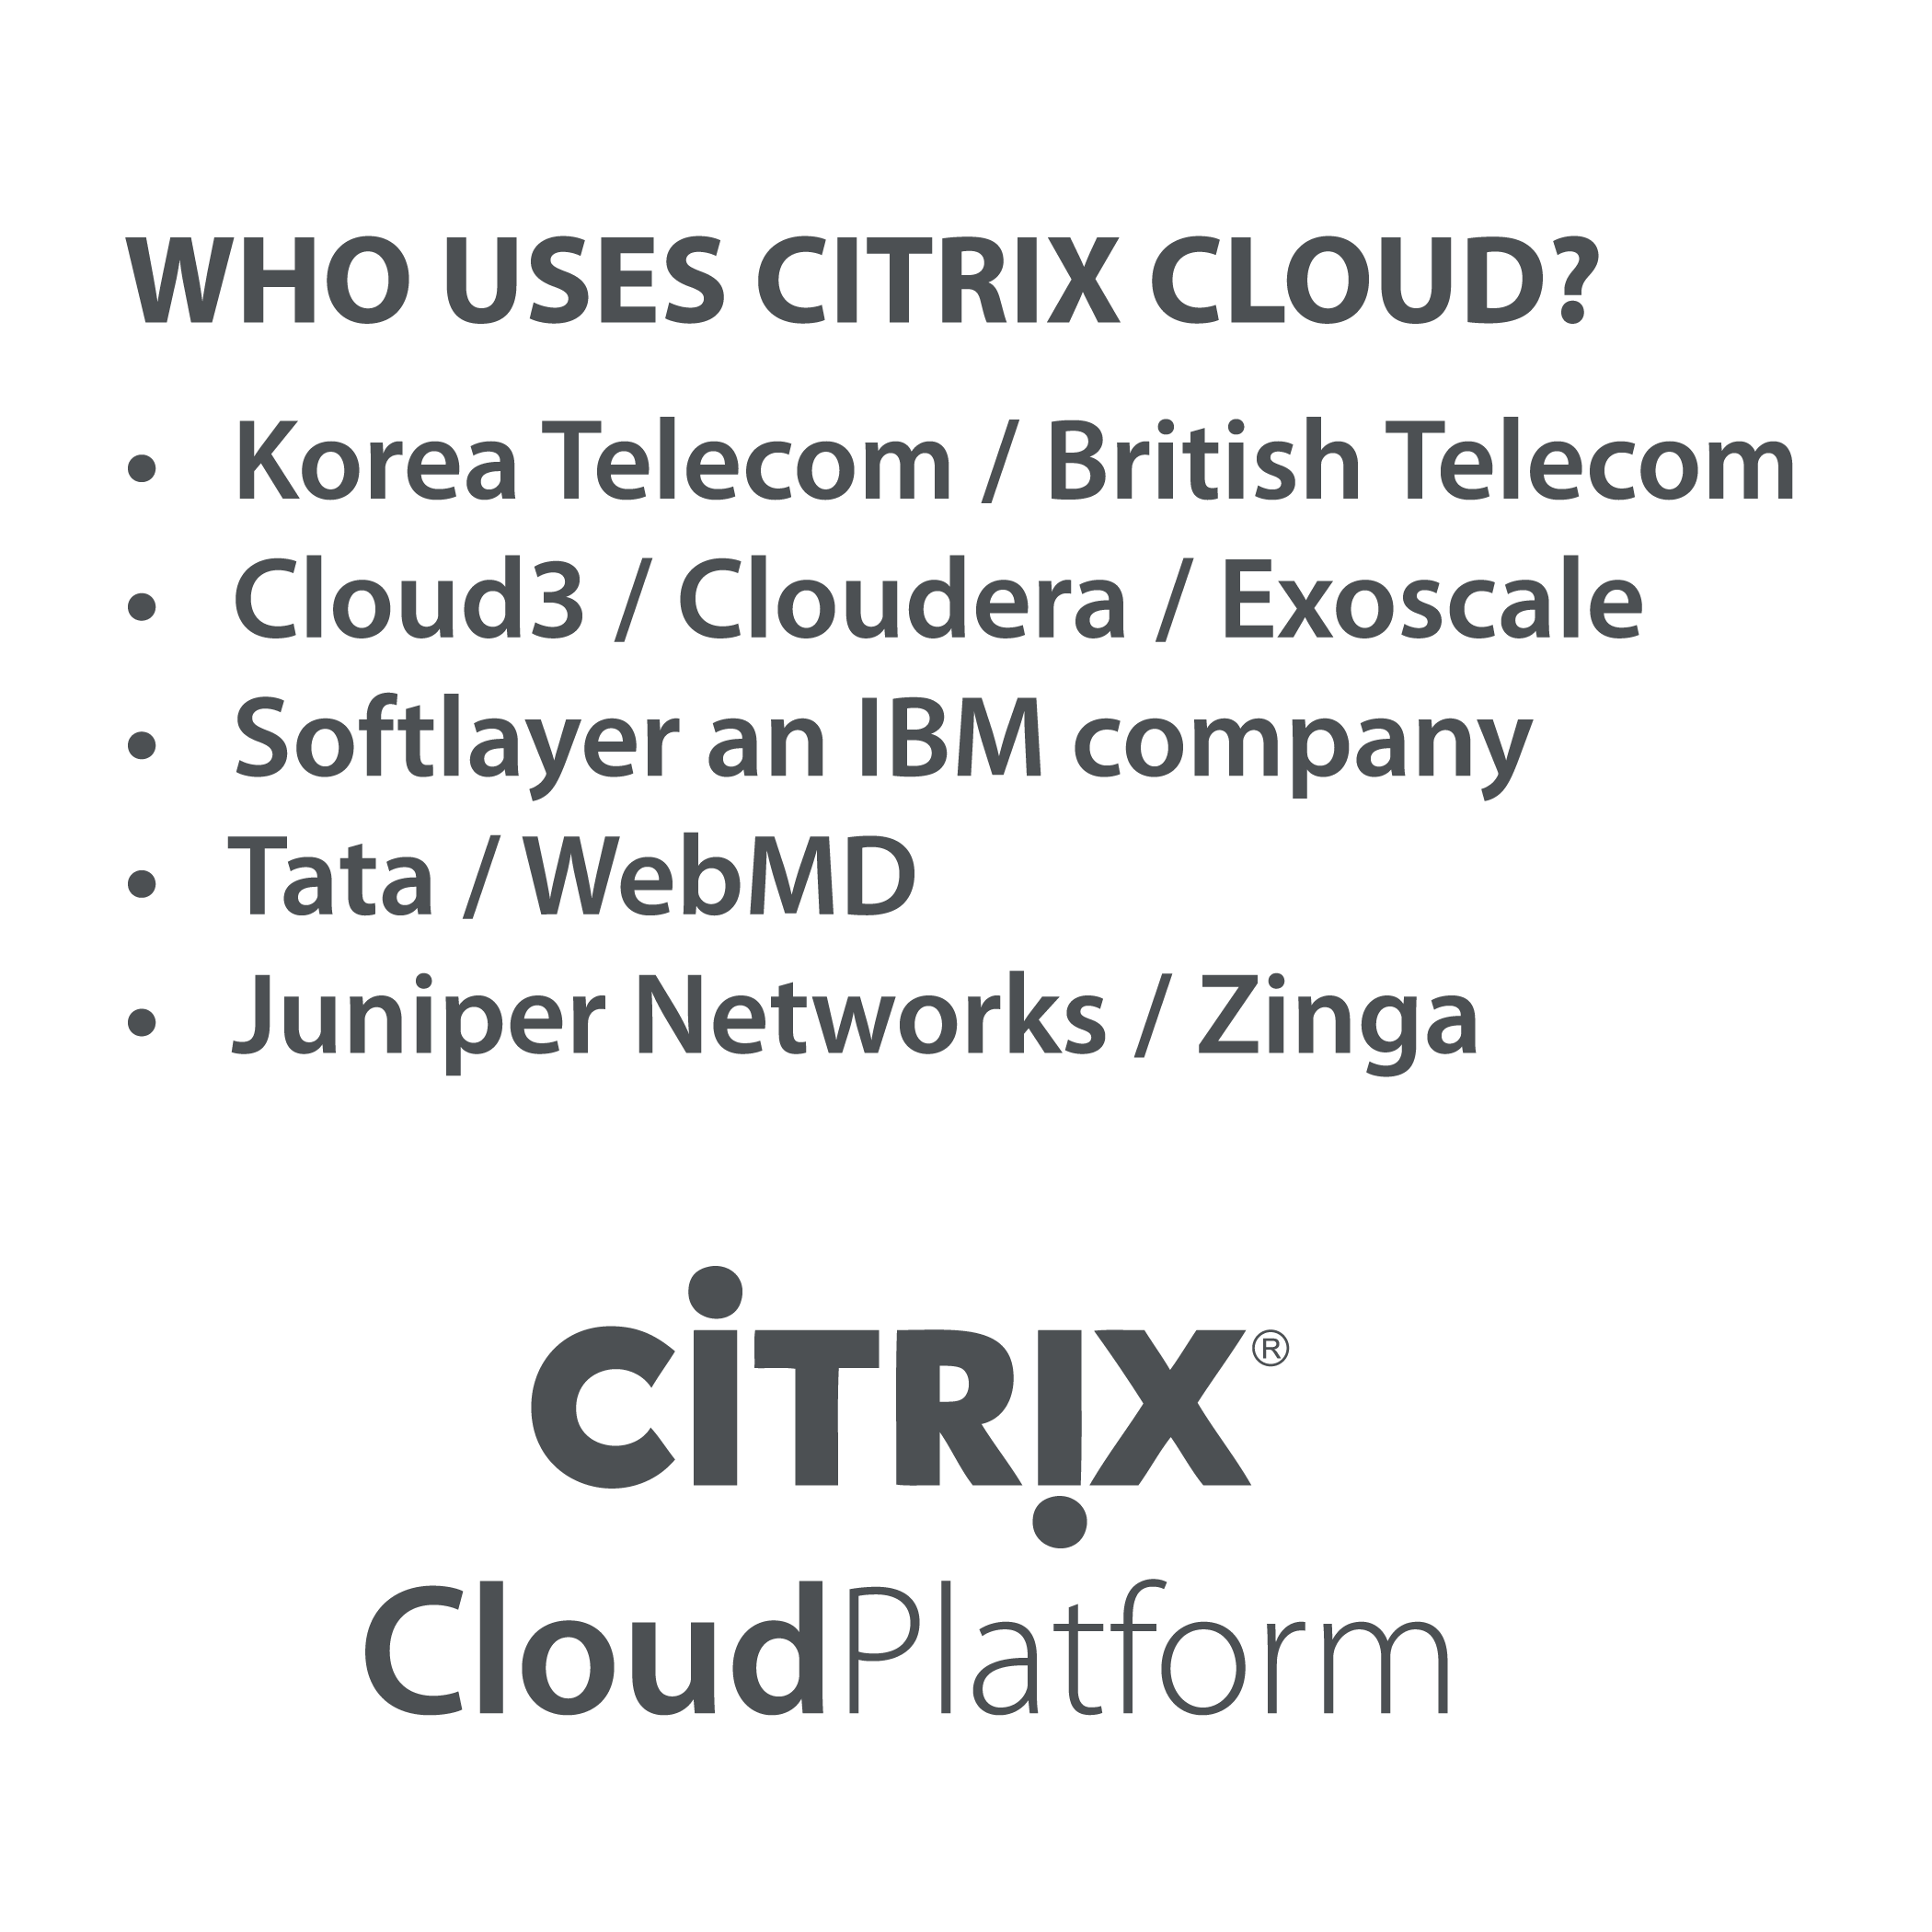 Who uses citrix cloud